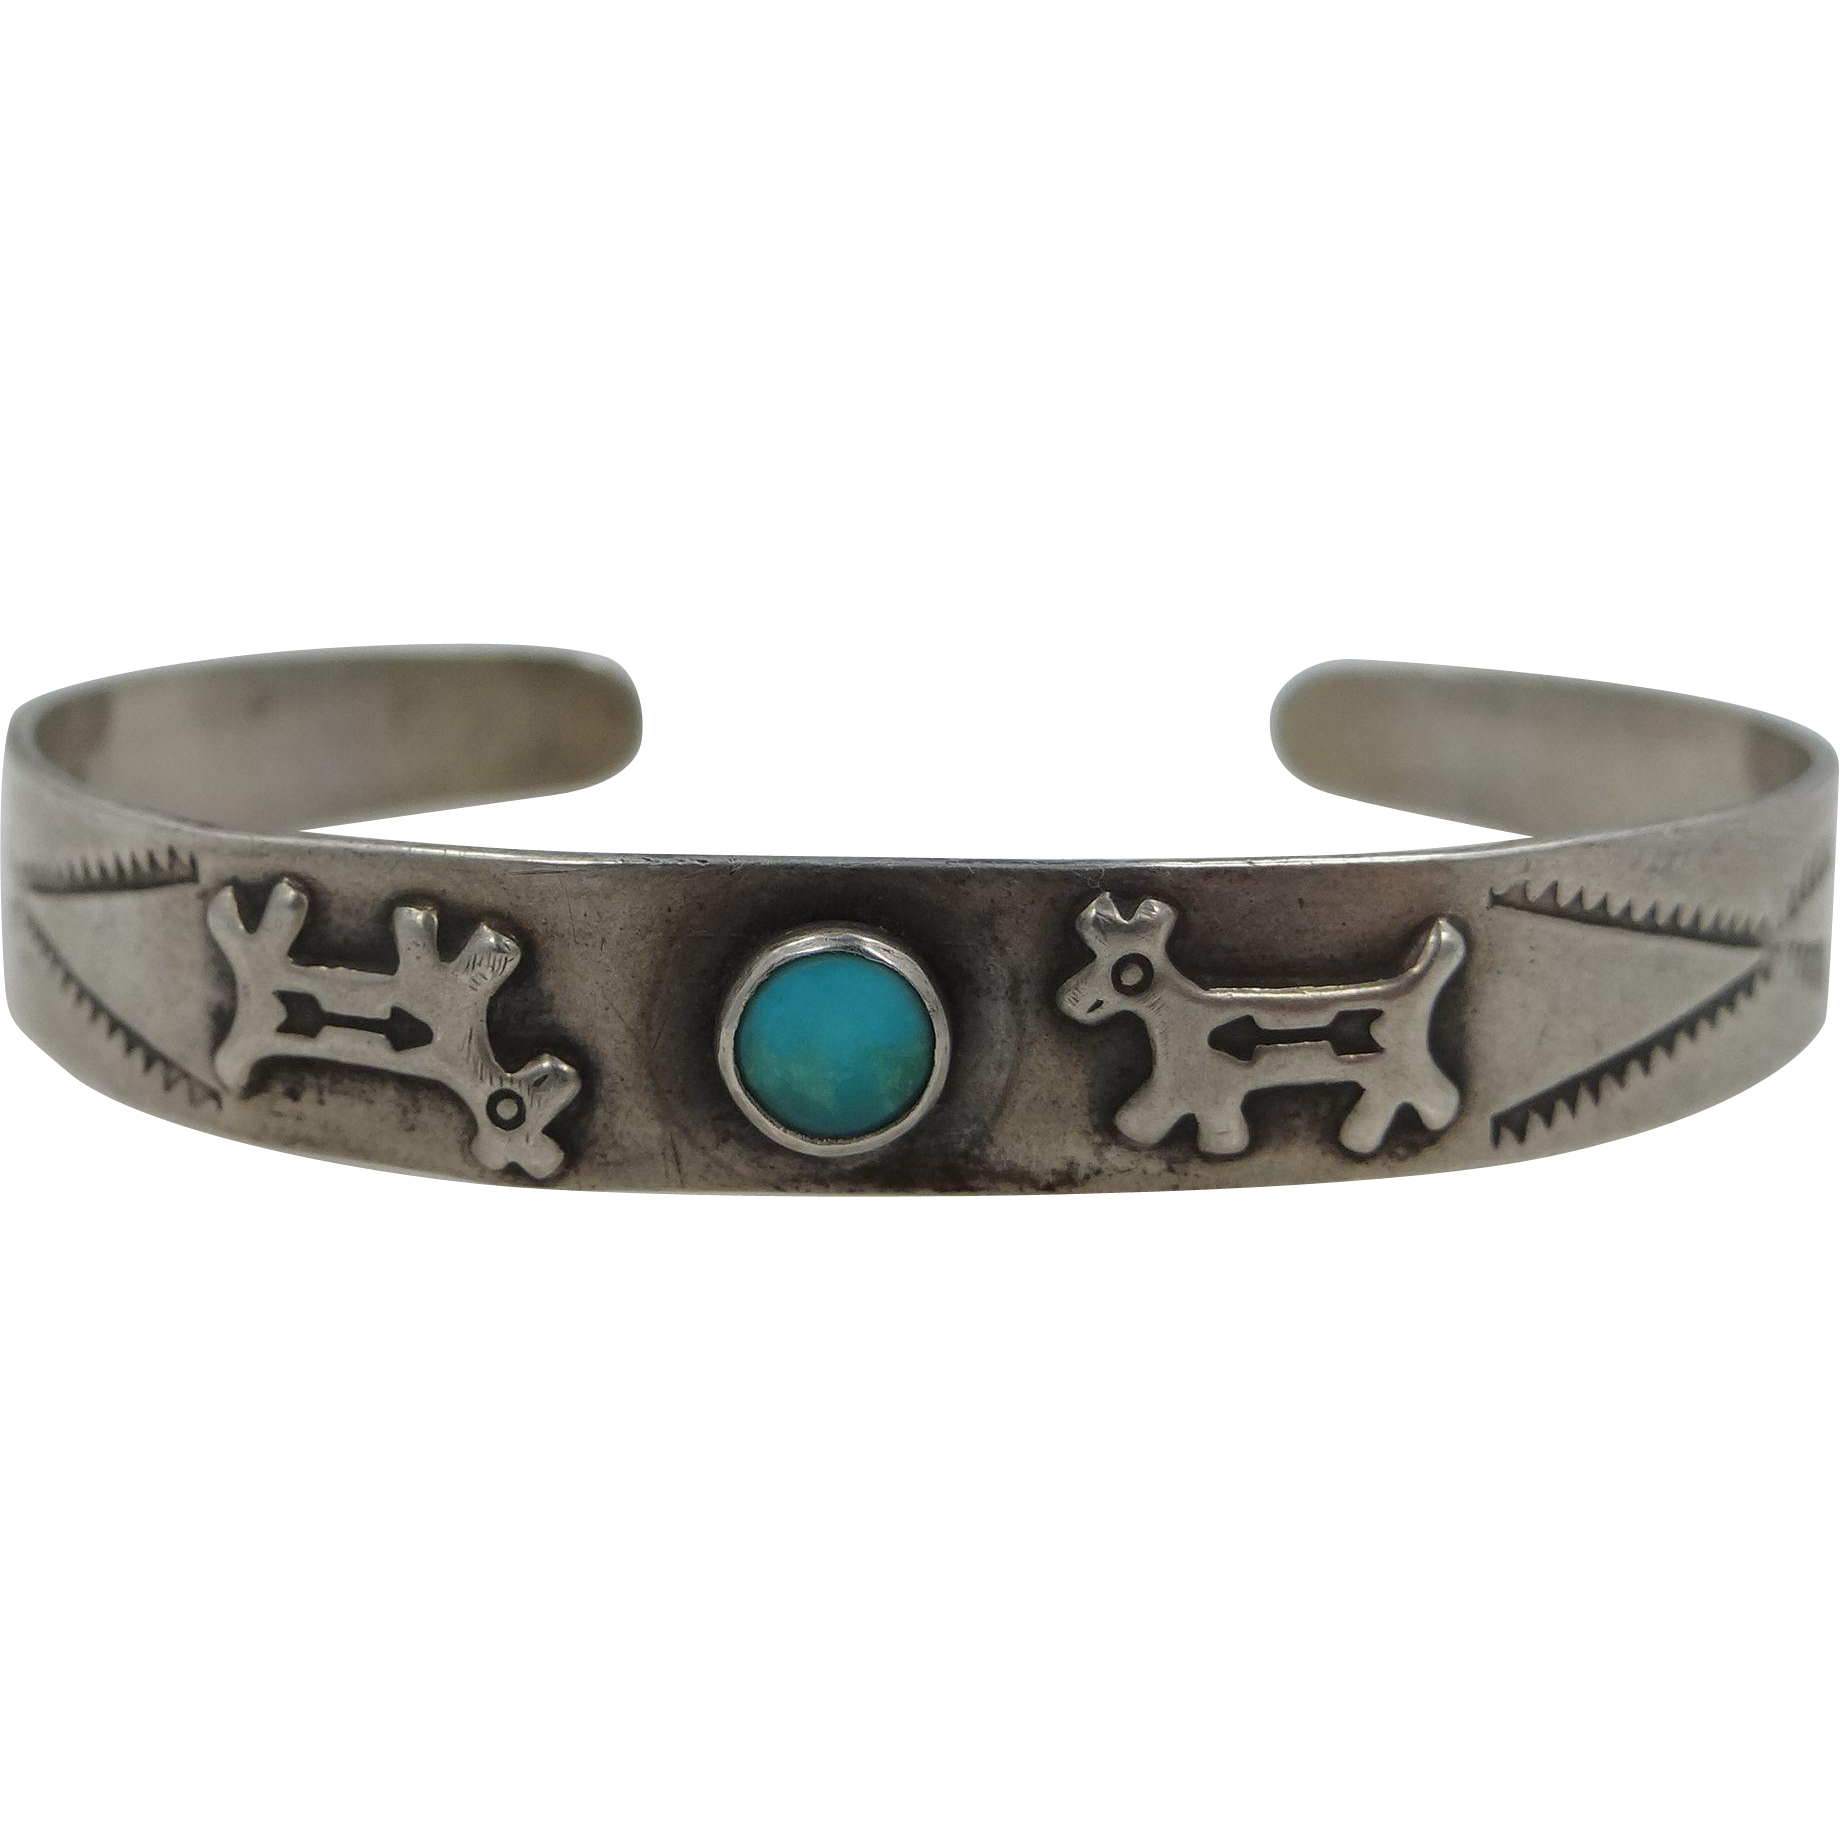 Maisels Trading Post 3 Sterling and Turquoise Cuff Bracelet